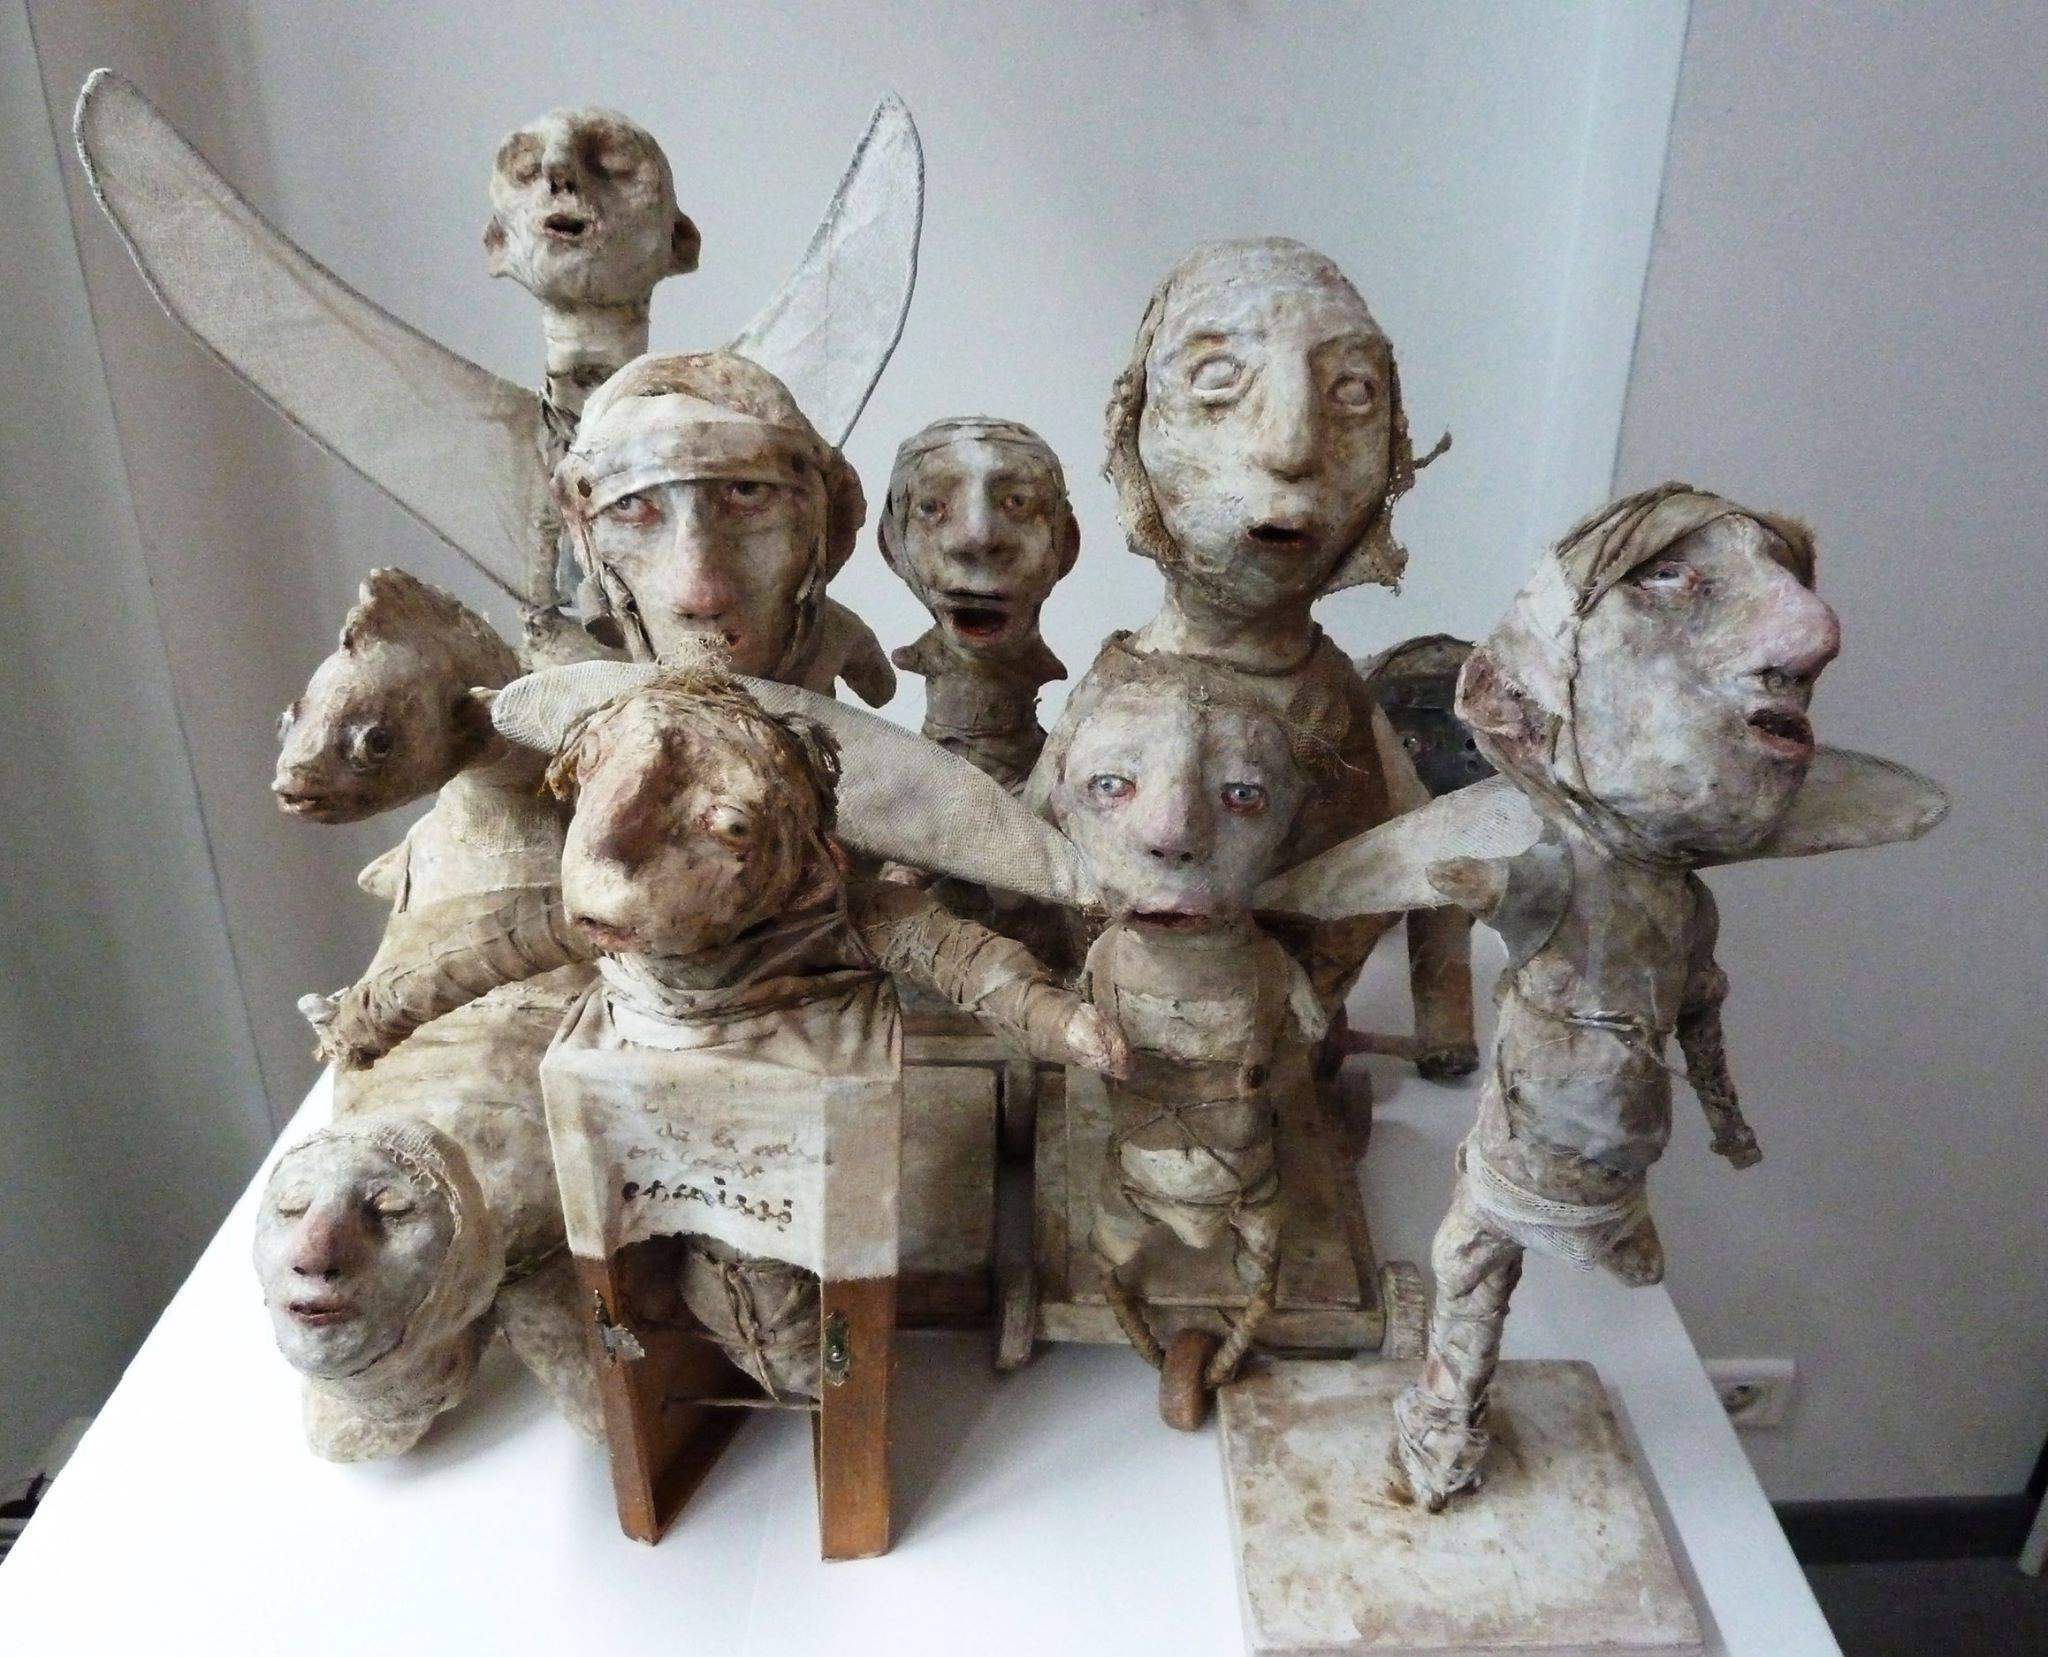 Stroff Denis – Sculptures Mixed Media Art